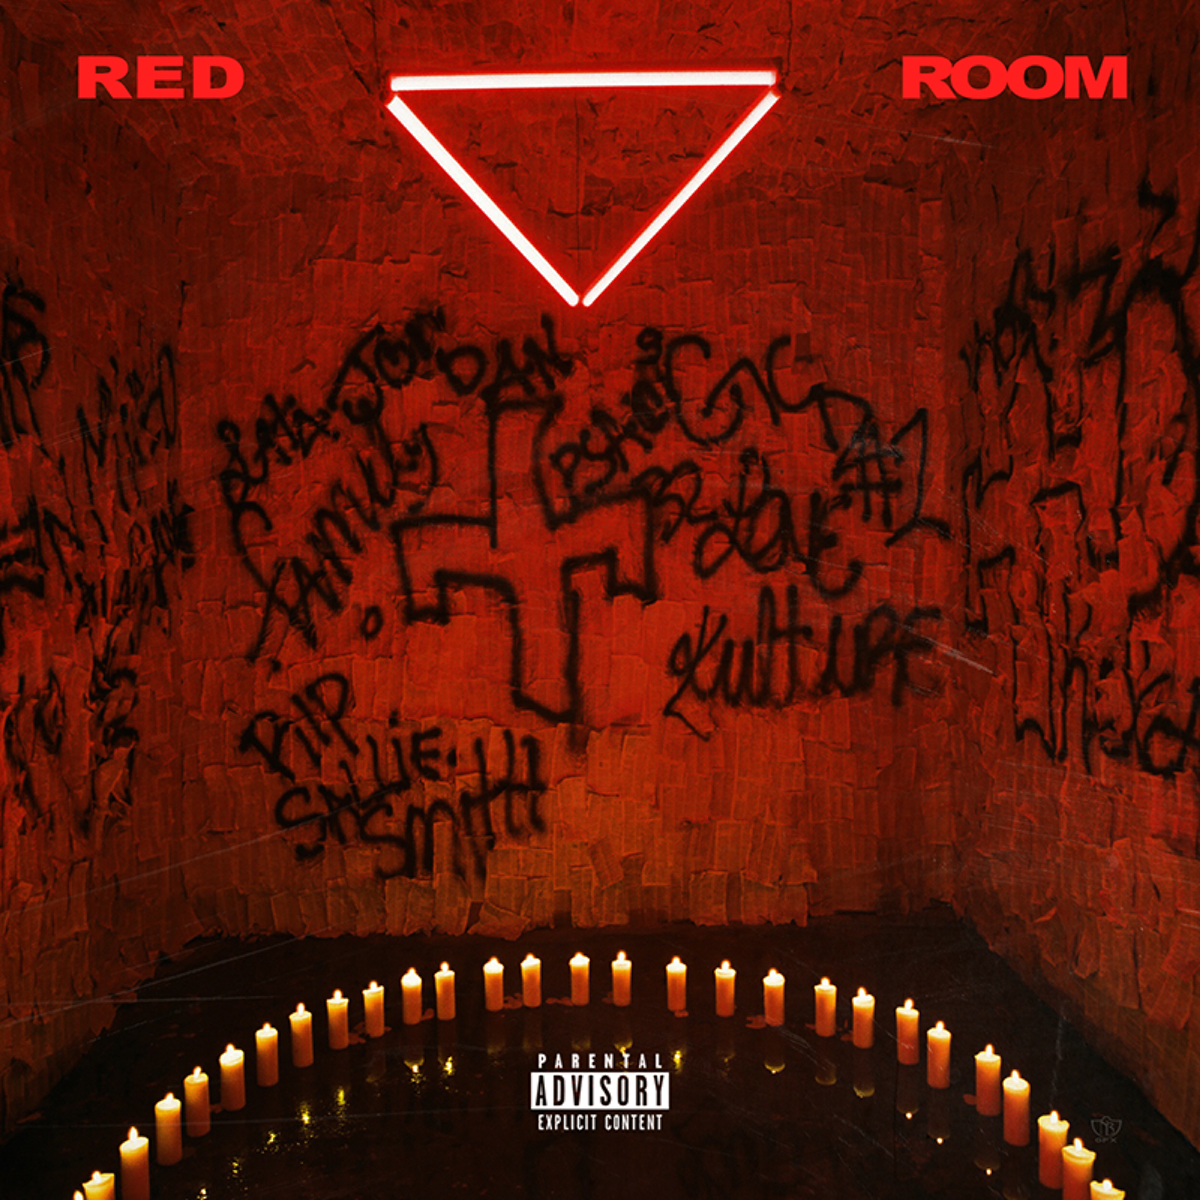 Offset shares first single from forthcoming album, 'Red Room'